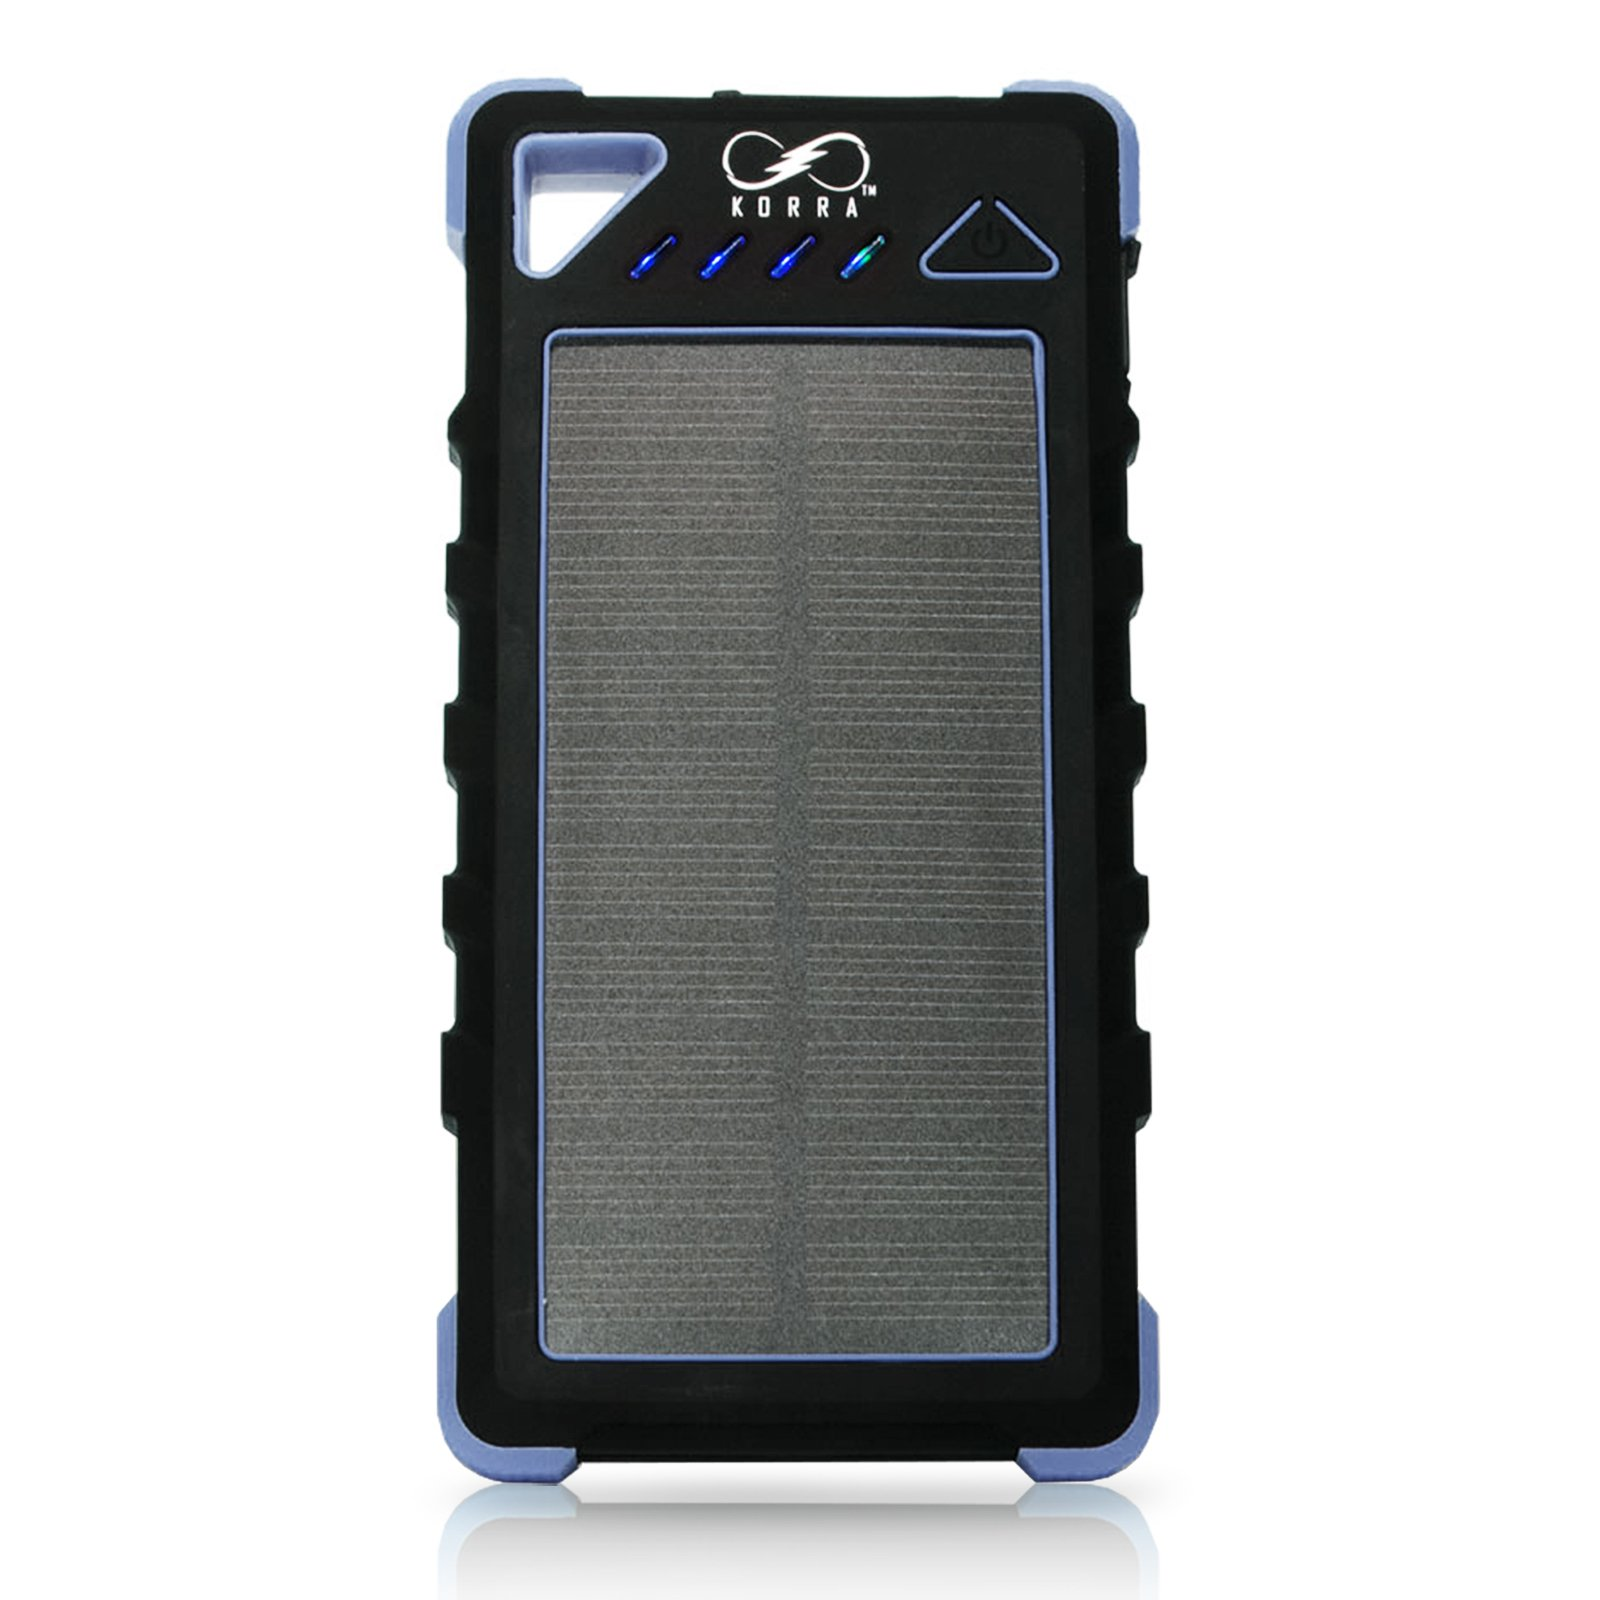 Korra 16K Solar Power Bank (Blue)   Portable 16,000mAh Dual USB Solar Charger   IP67 Waterproof External Battery Pack   LED Flashlight with S.O.S.   Perfect for Outdoorsmen, Apple, Samsung and More